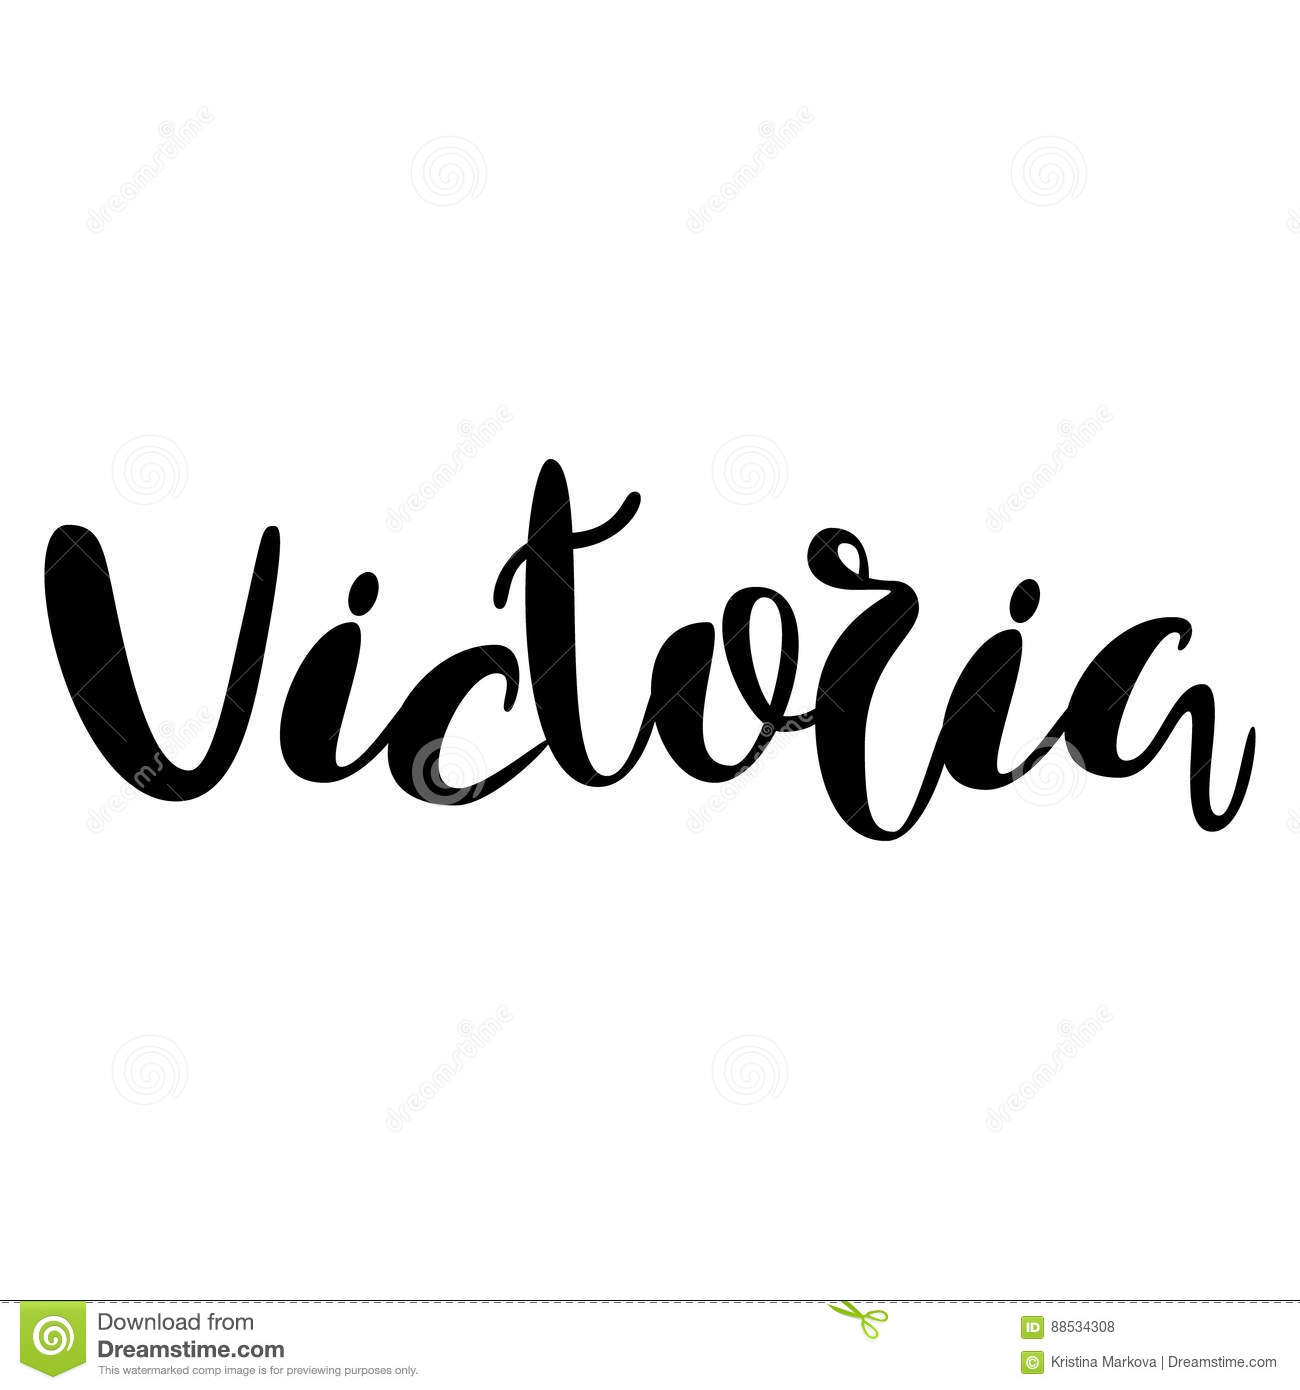 Female name victoria lettering design handwritten